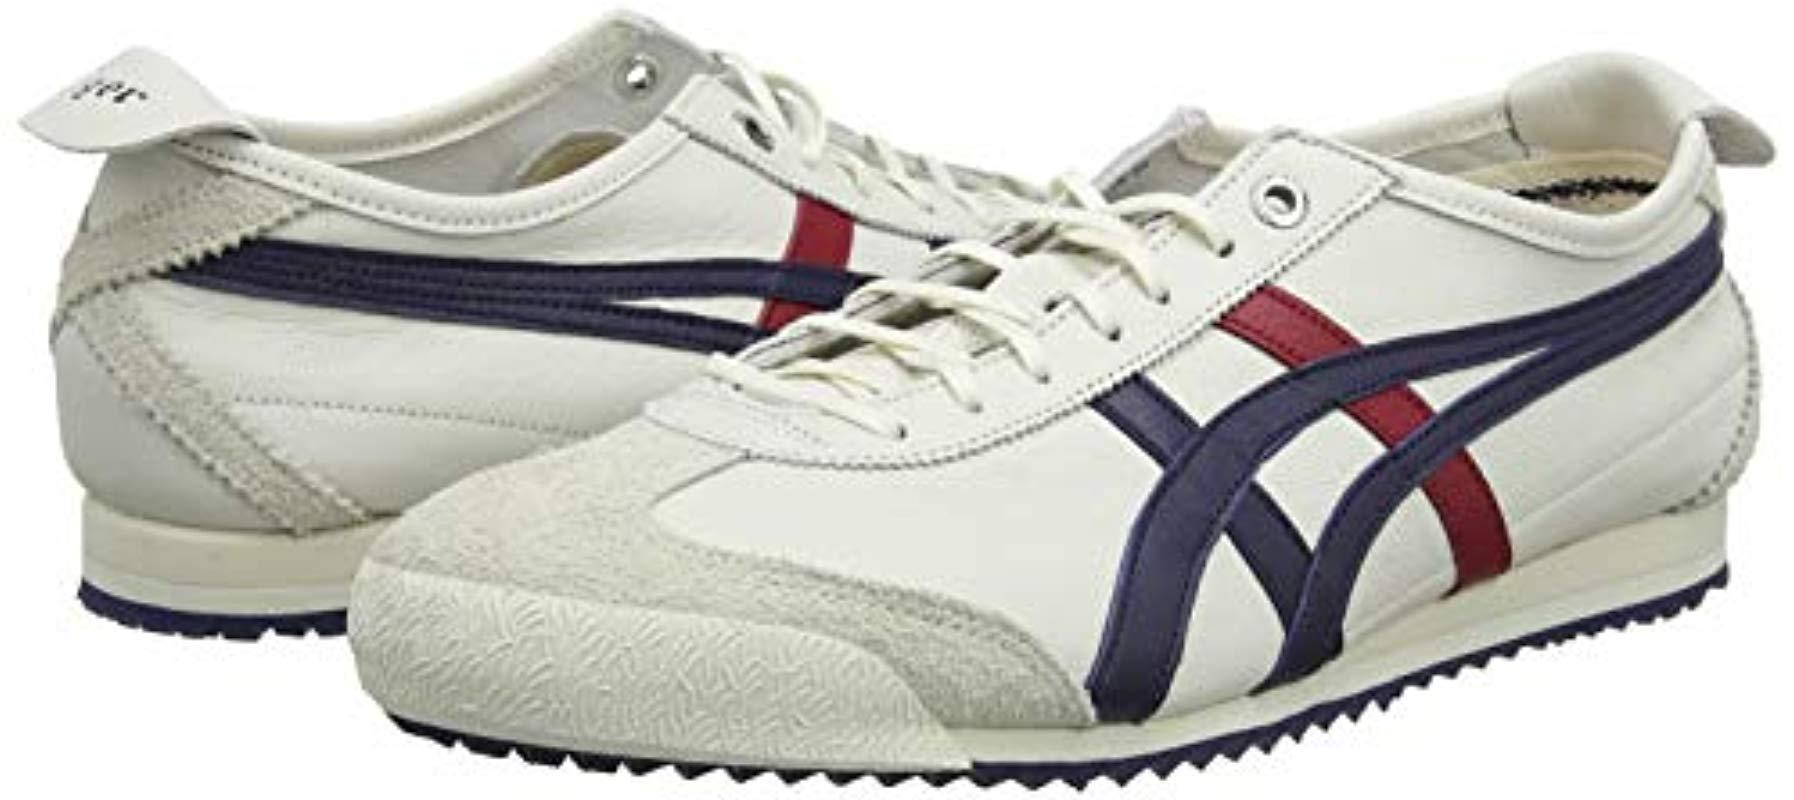 onitsuka tiger mexico 66 sd yellow black uk outlet colombia